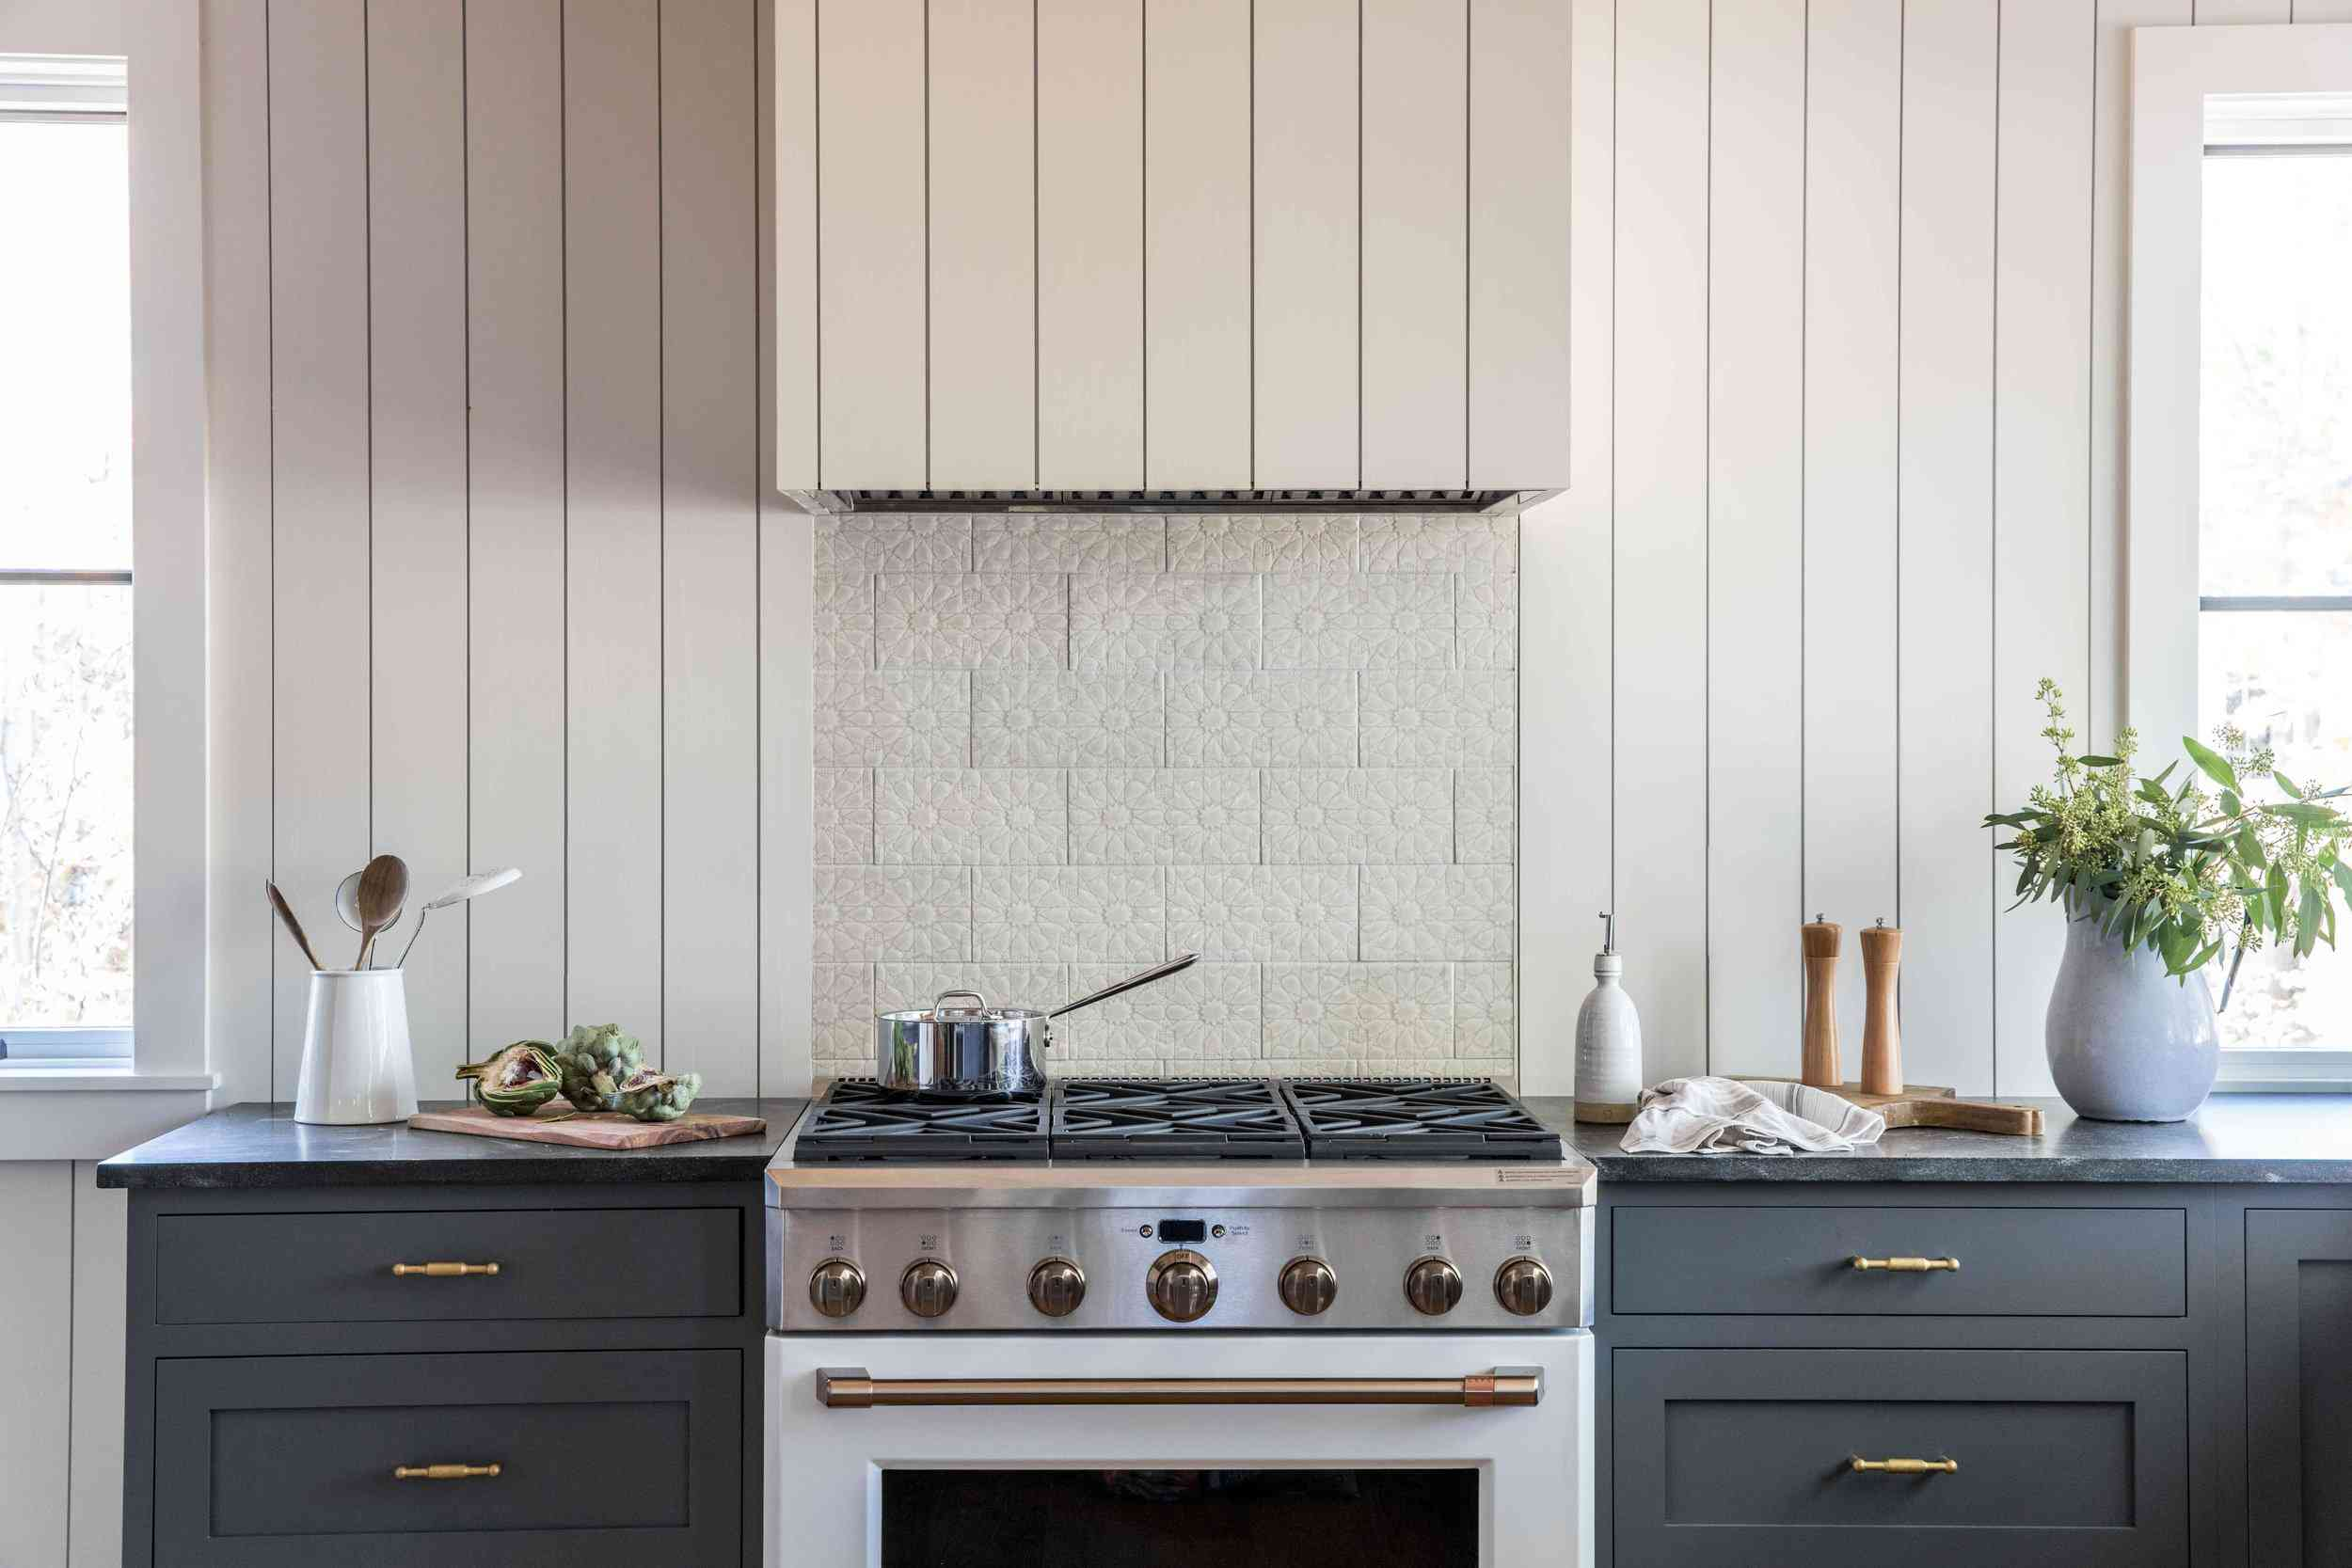 A backsplash lined with white tiles that have been textured to suggest a floral print